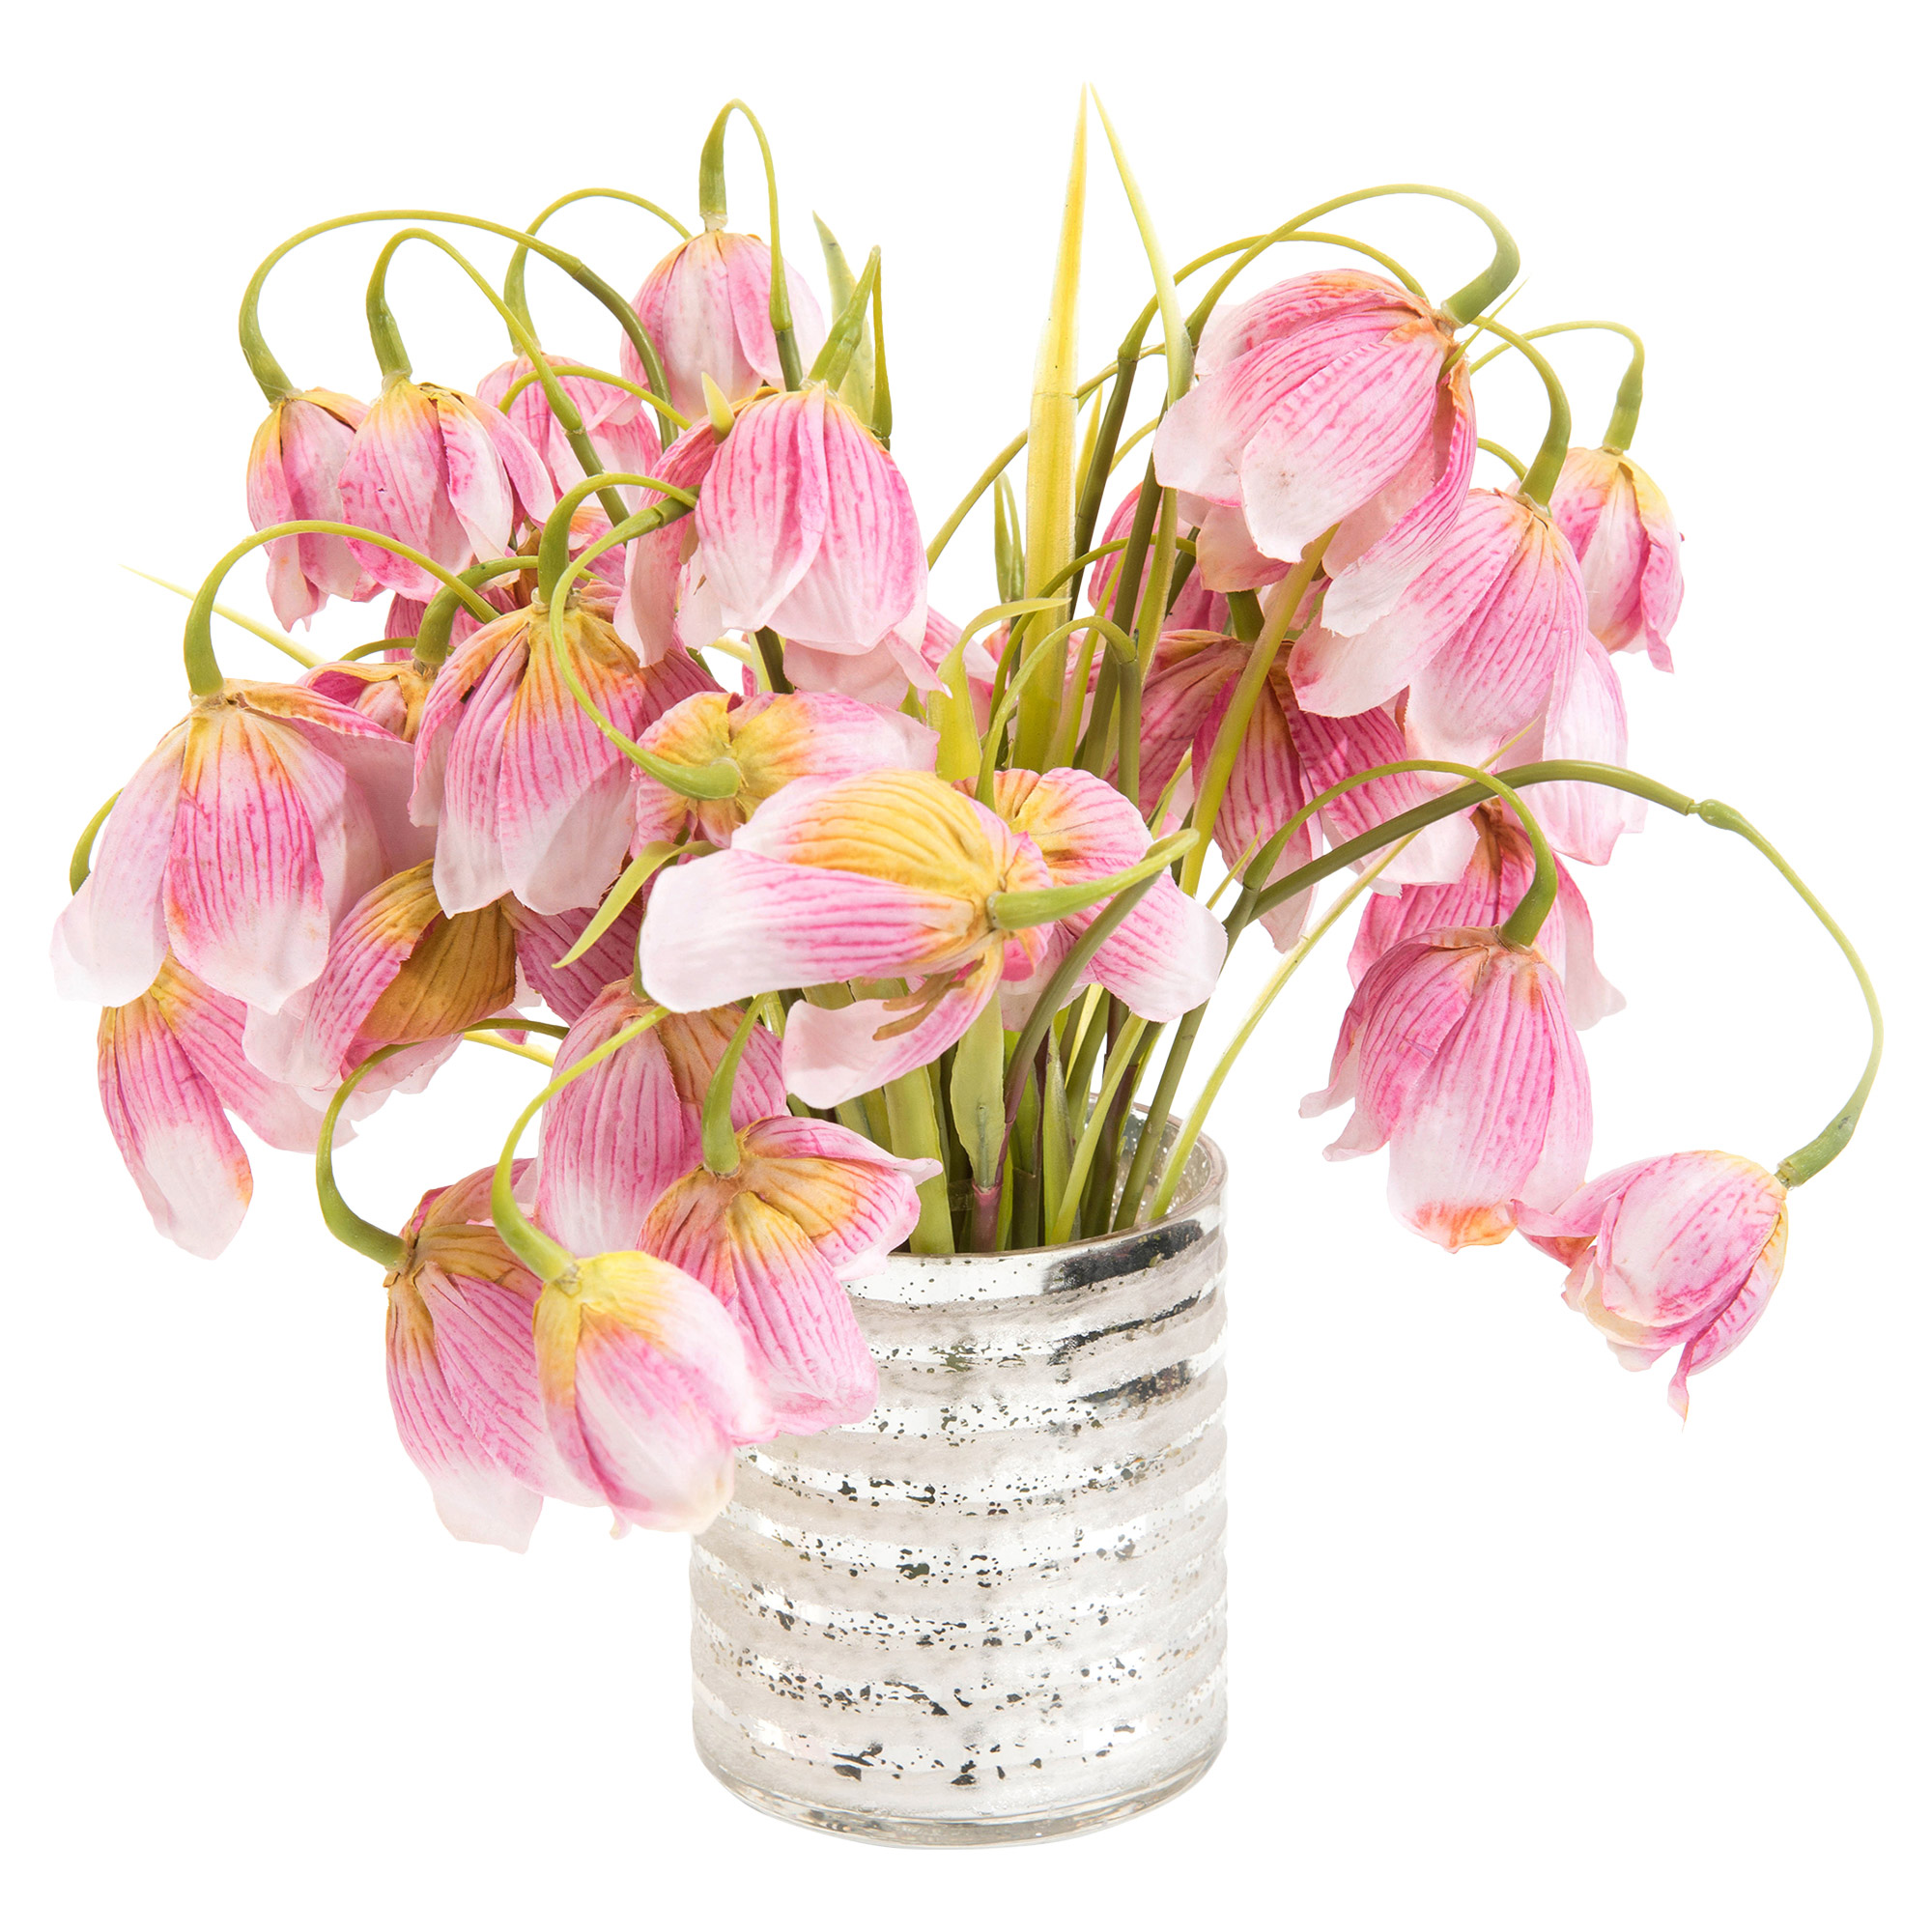 Charleston Pink Lily Faux-Floral Dew Drops Bouquet